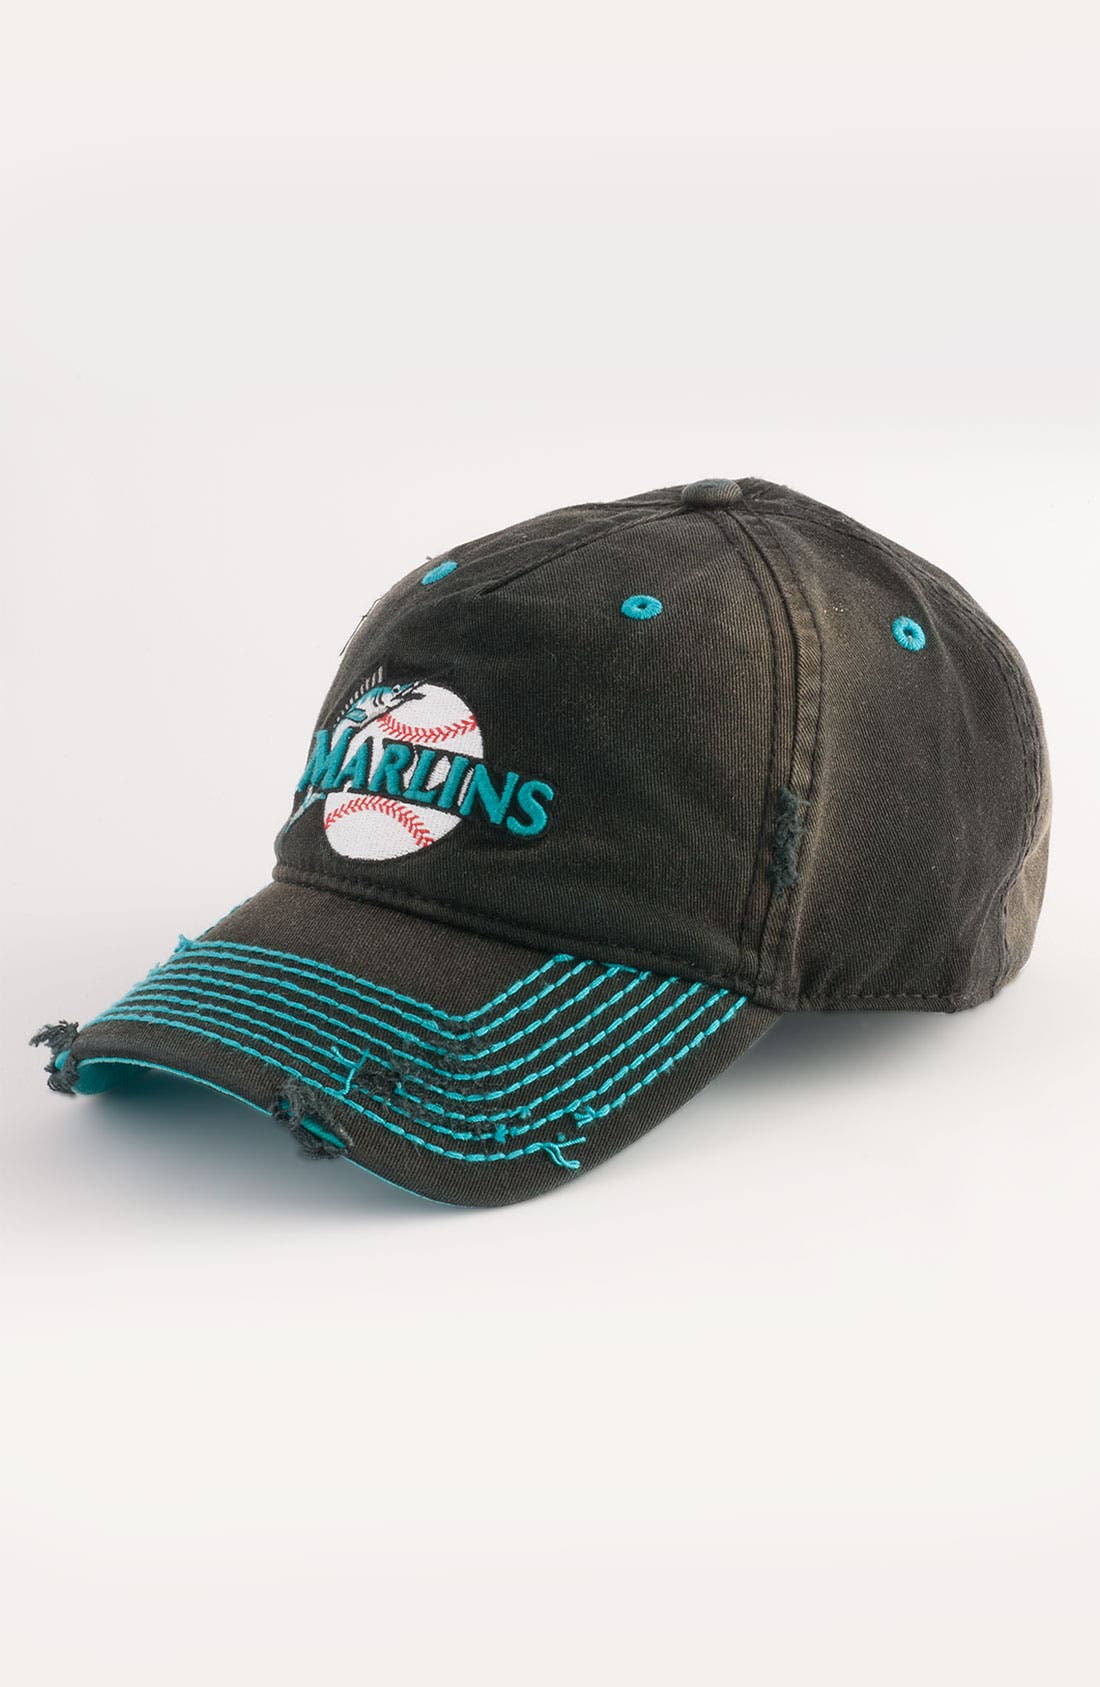 Main Image - American Needle 'Marlins' Baseball Cap